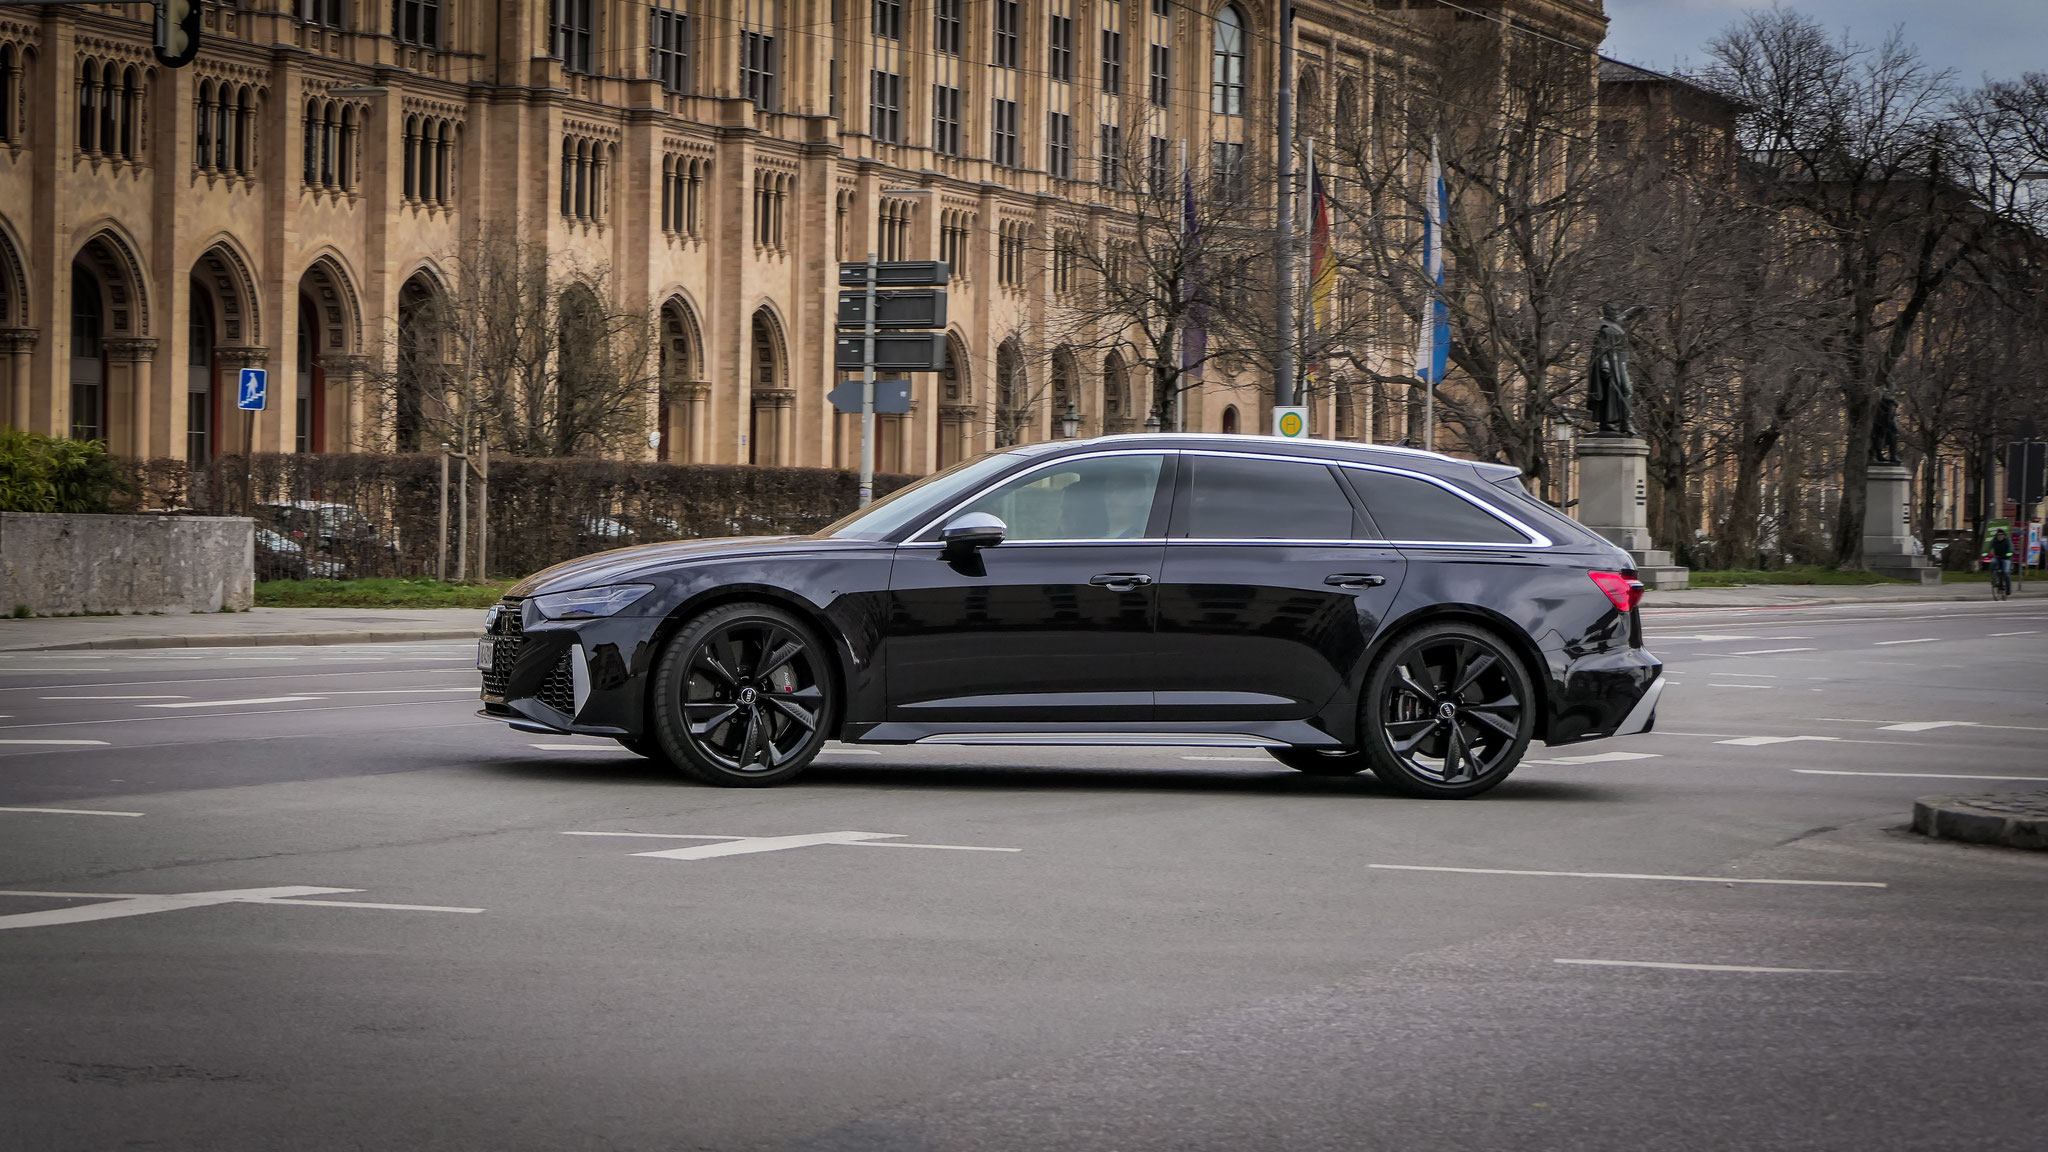 Audi RS6 - IN-BG-4398